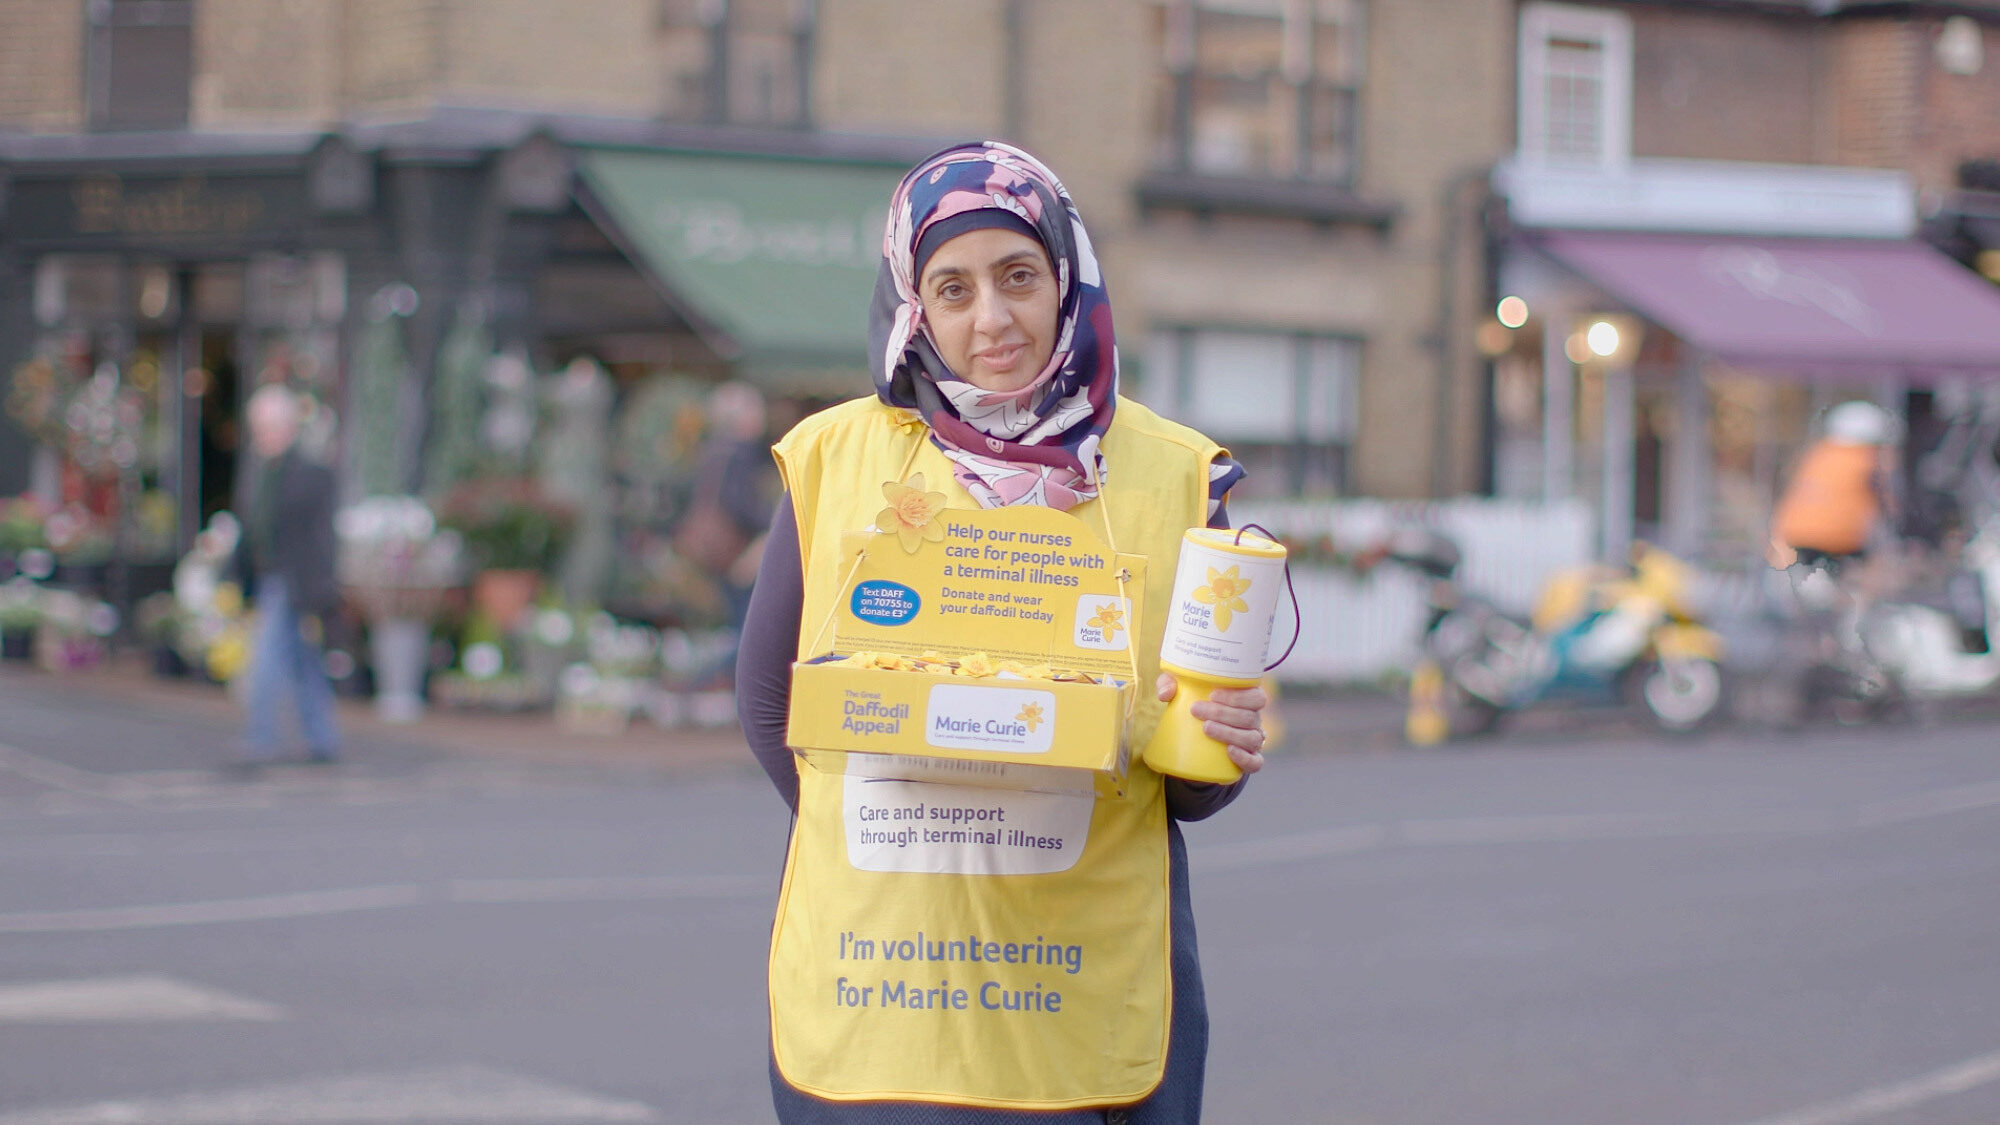 A fundraiser wearing a yellow overall from Marie Curie's social content campaign